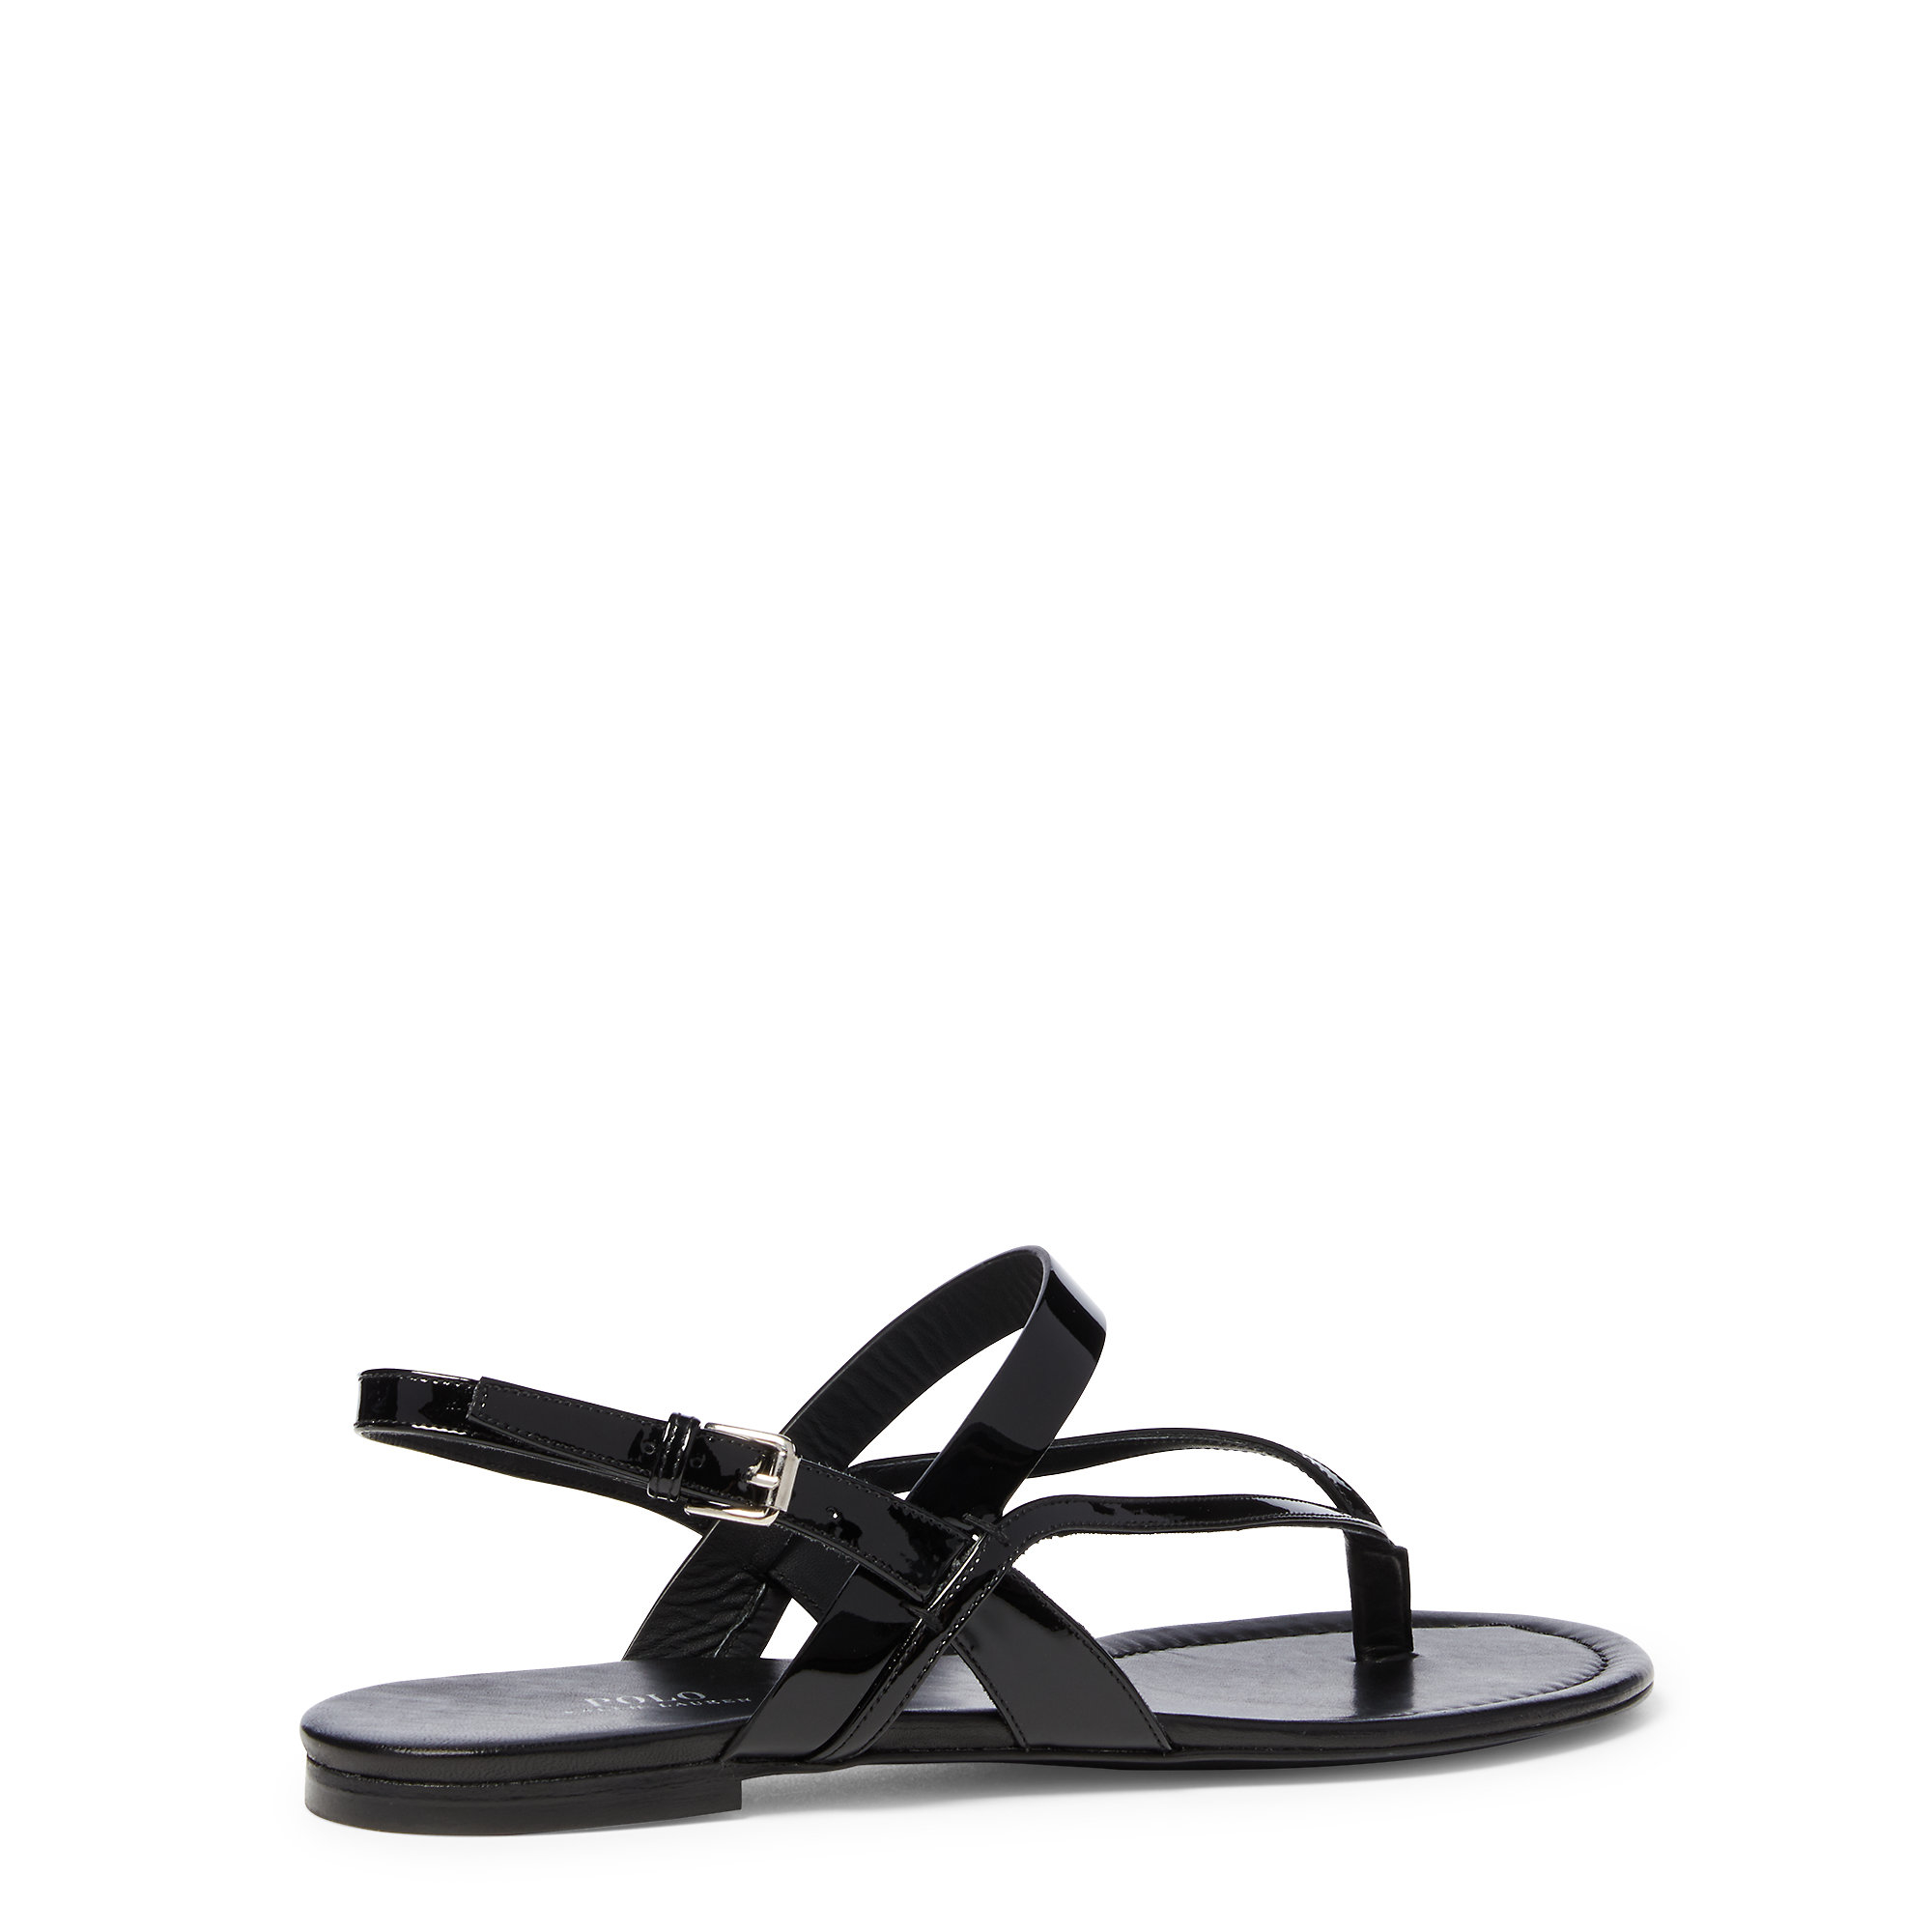 great deals sale online Lauren Ralph Lauren Patent Leather Slide Sandals cheap sale brand new unisex WIs9E